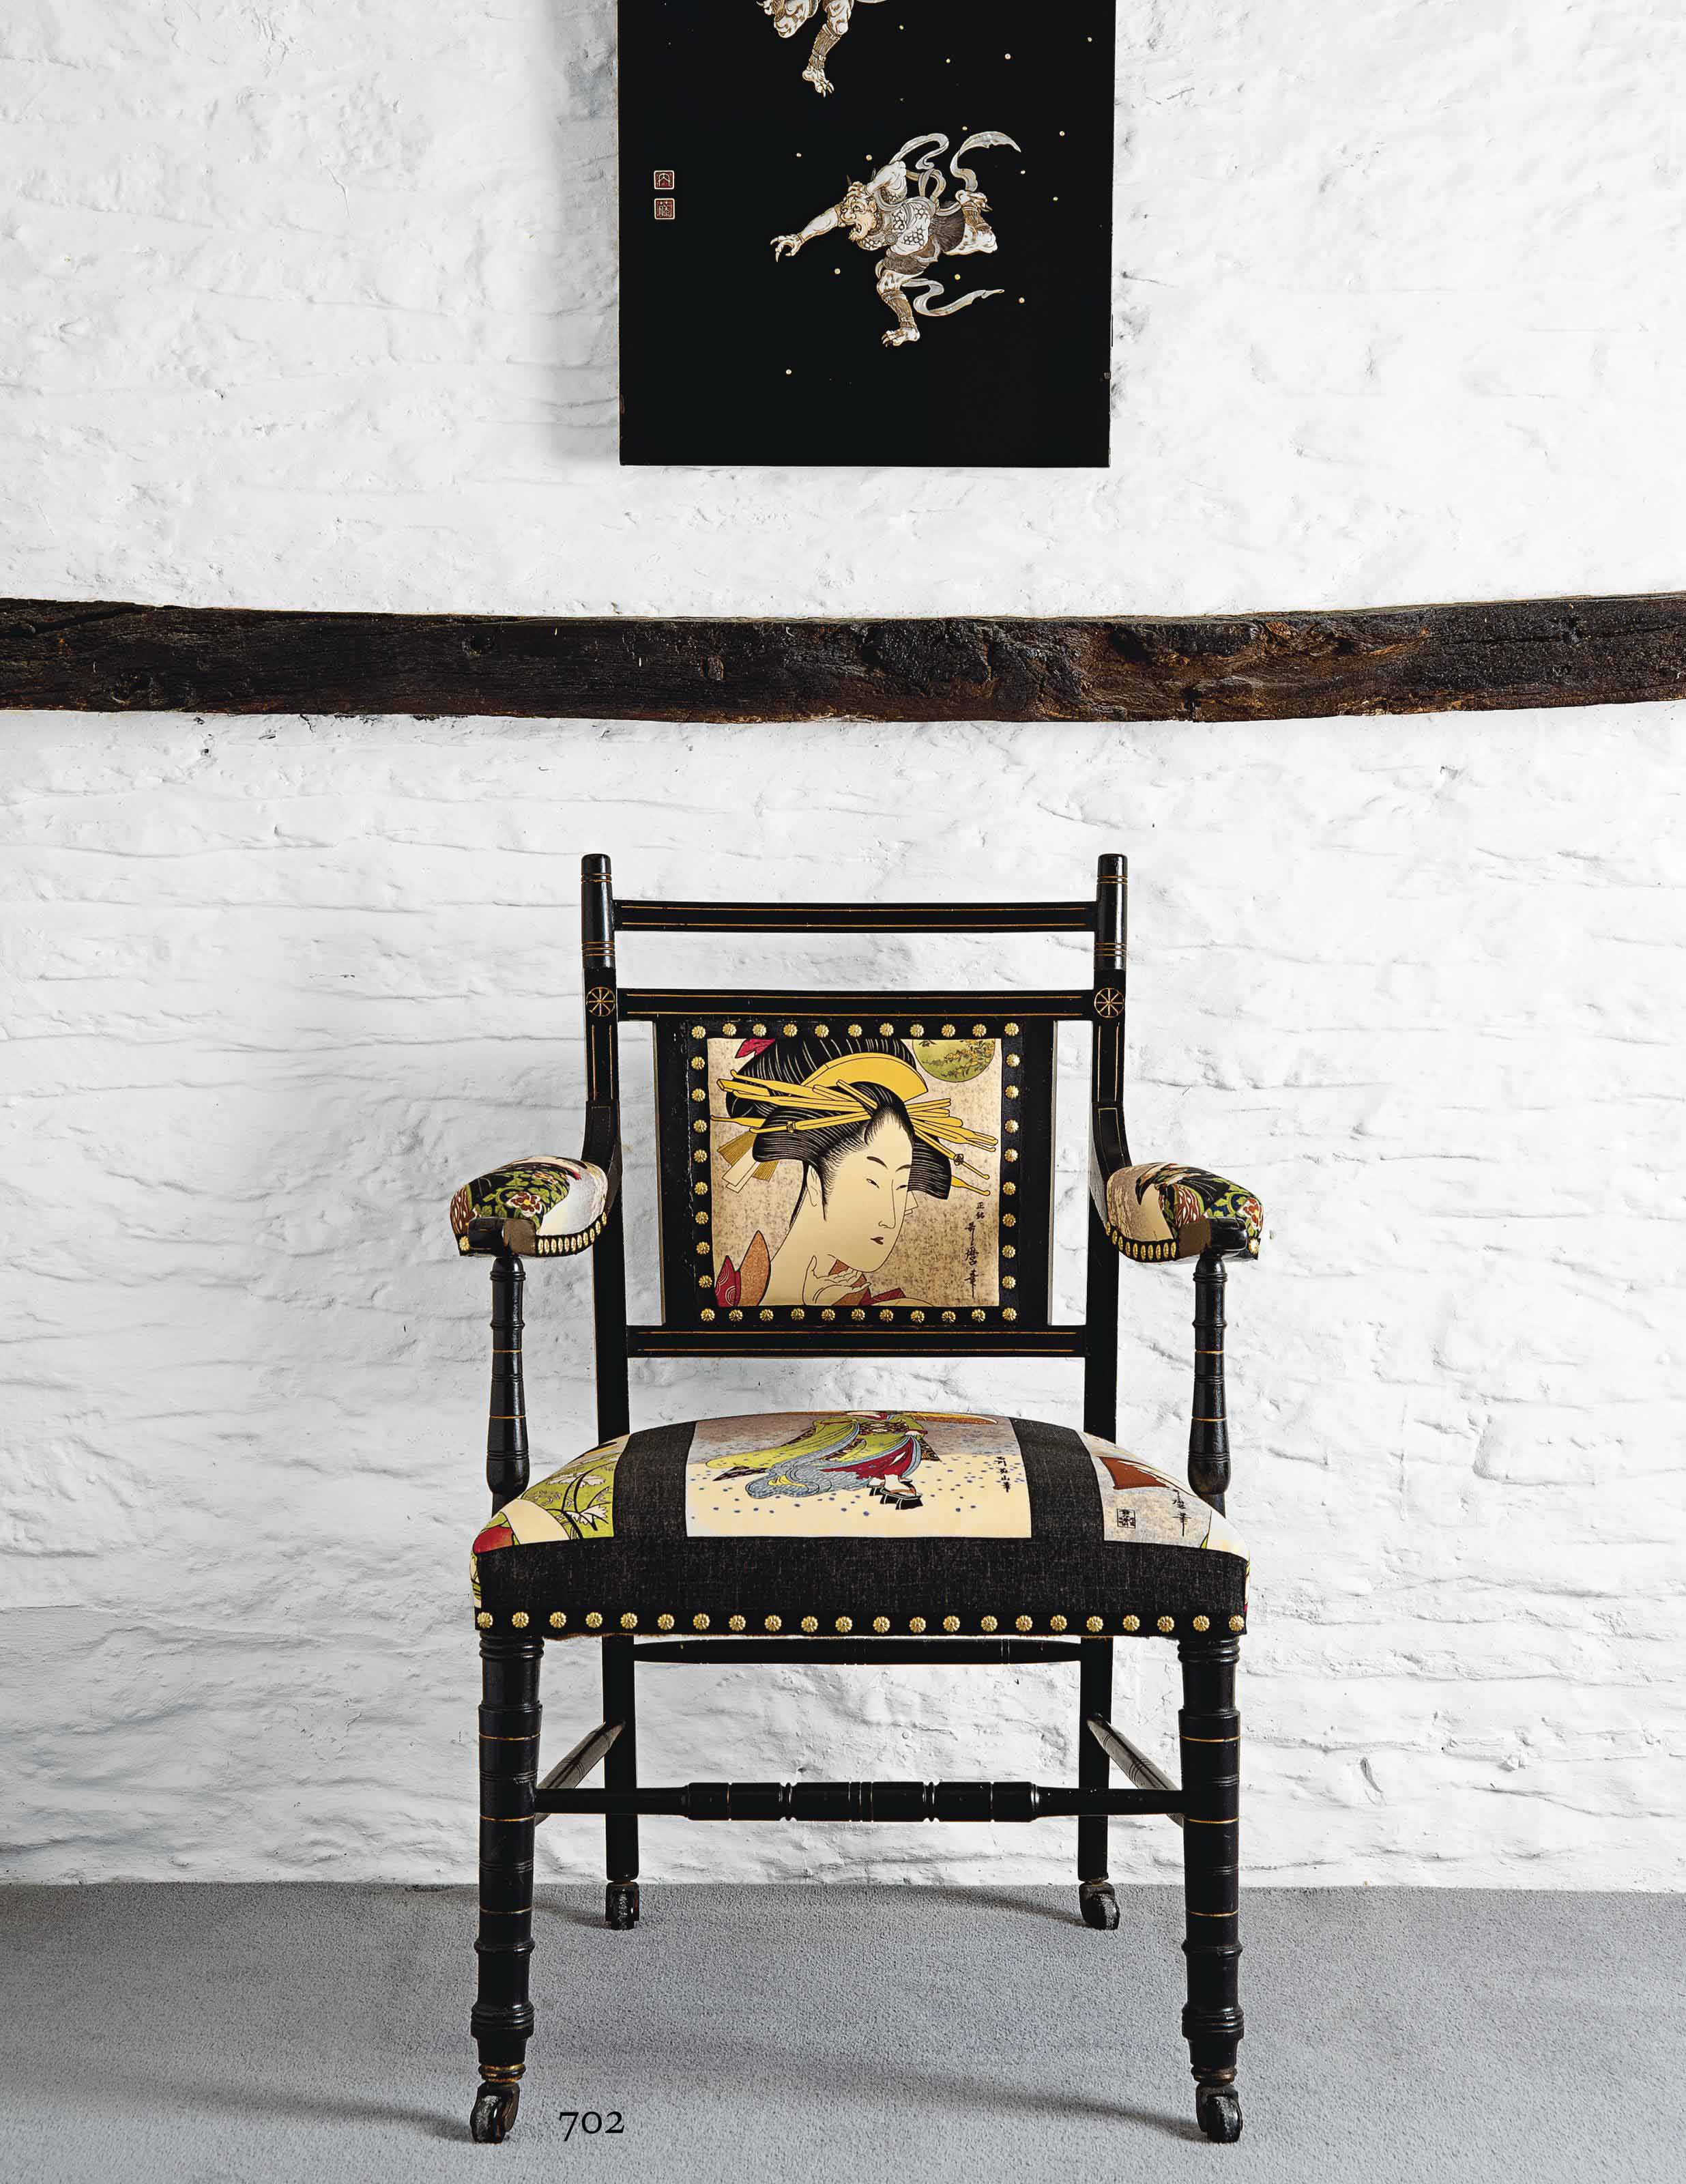 AN EBONISED WOOD AND UPHOLSTERED OPEN-ARMCHAIR MADE BY OETZMANN, AFTER E.W. GODWIN (1833-1886)